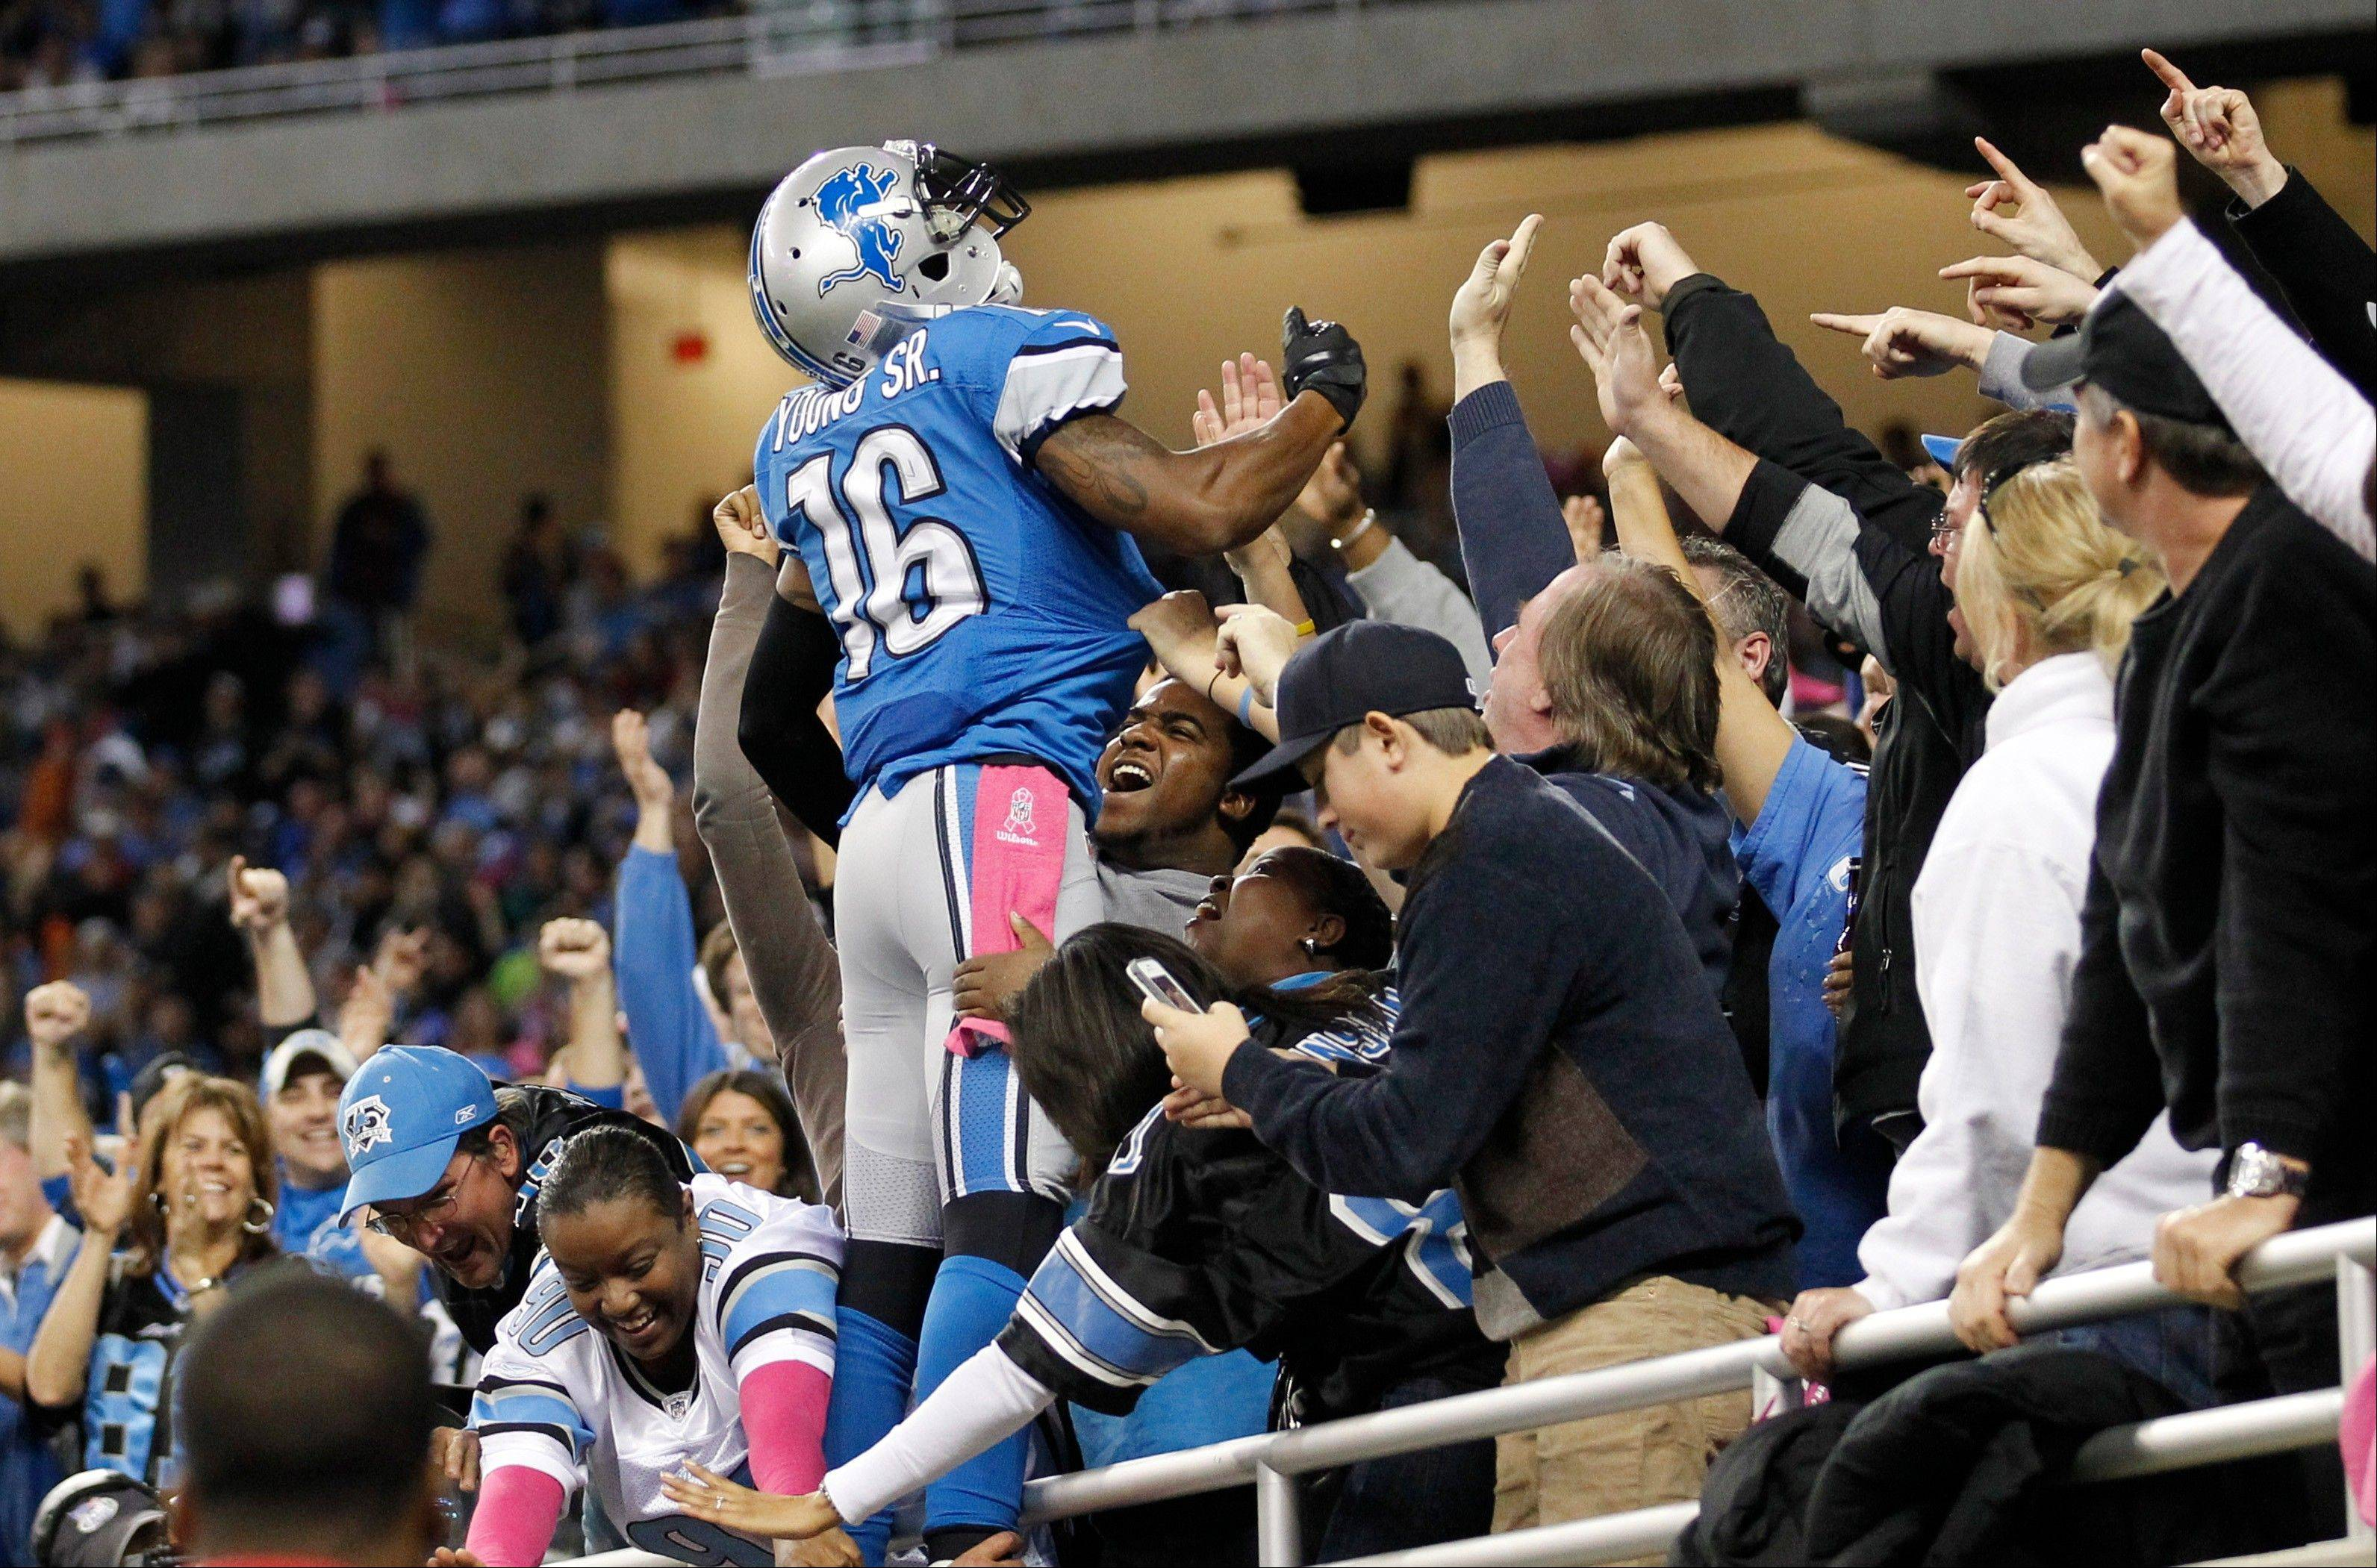 Detroit Lions wide receiver Titus Young celebrates his touchdown with fans Sunday during the first half against the Seattle Seahawks in Detroit.